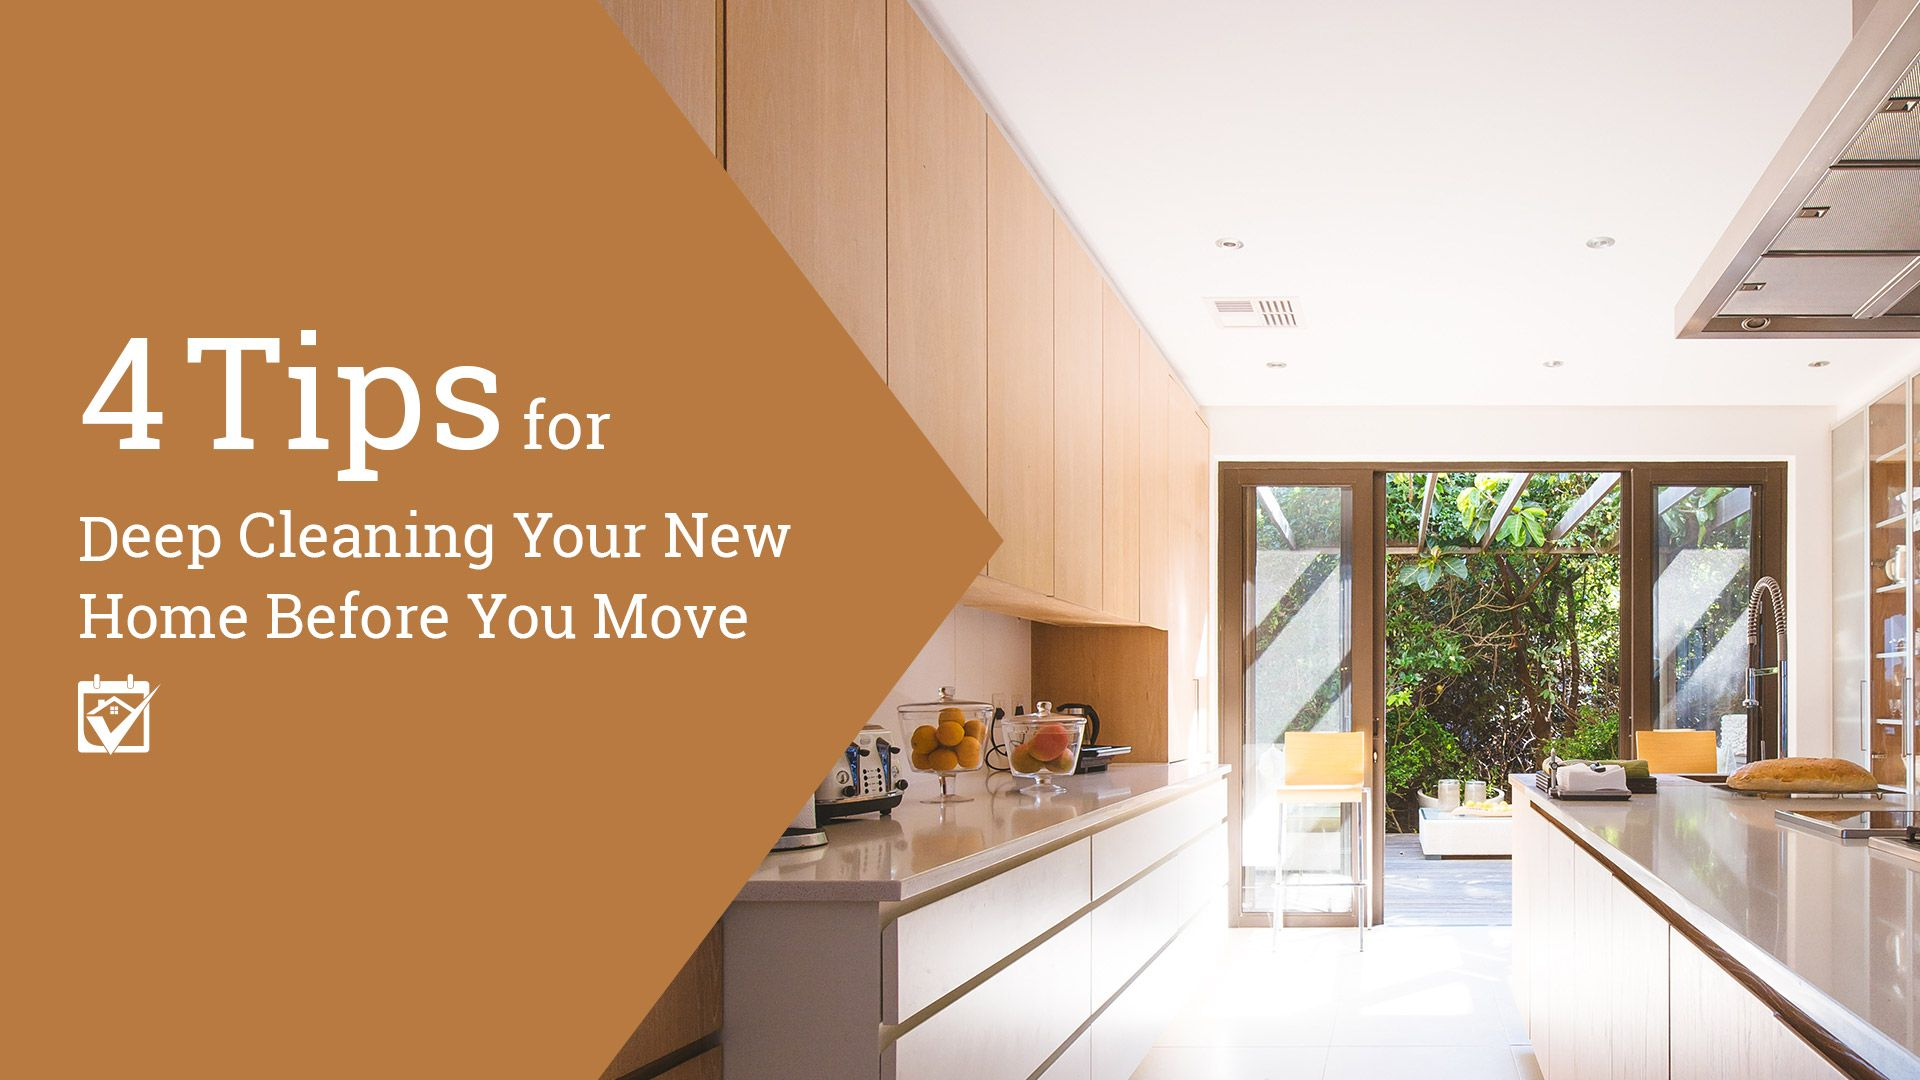 The Easy Way To Deep Clean Your Home